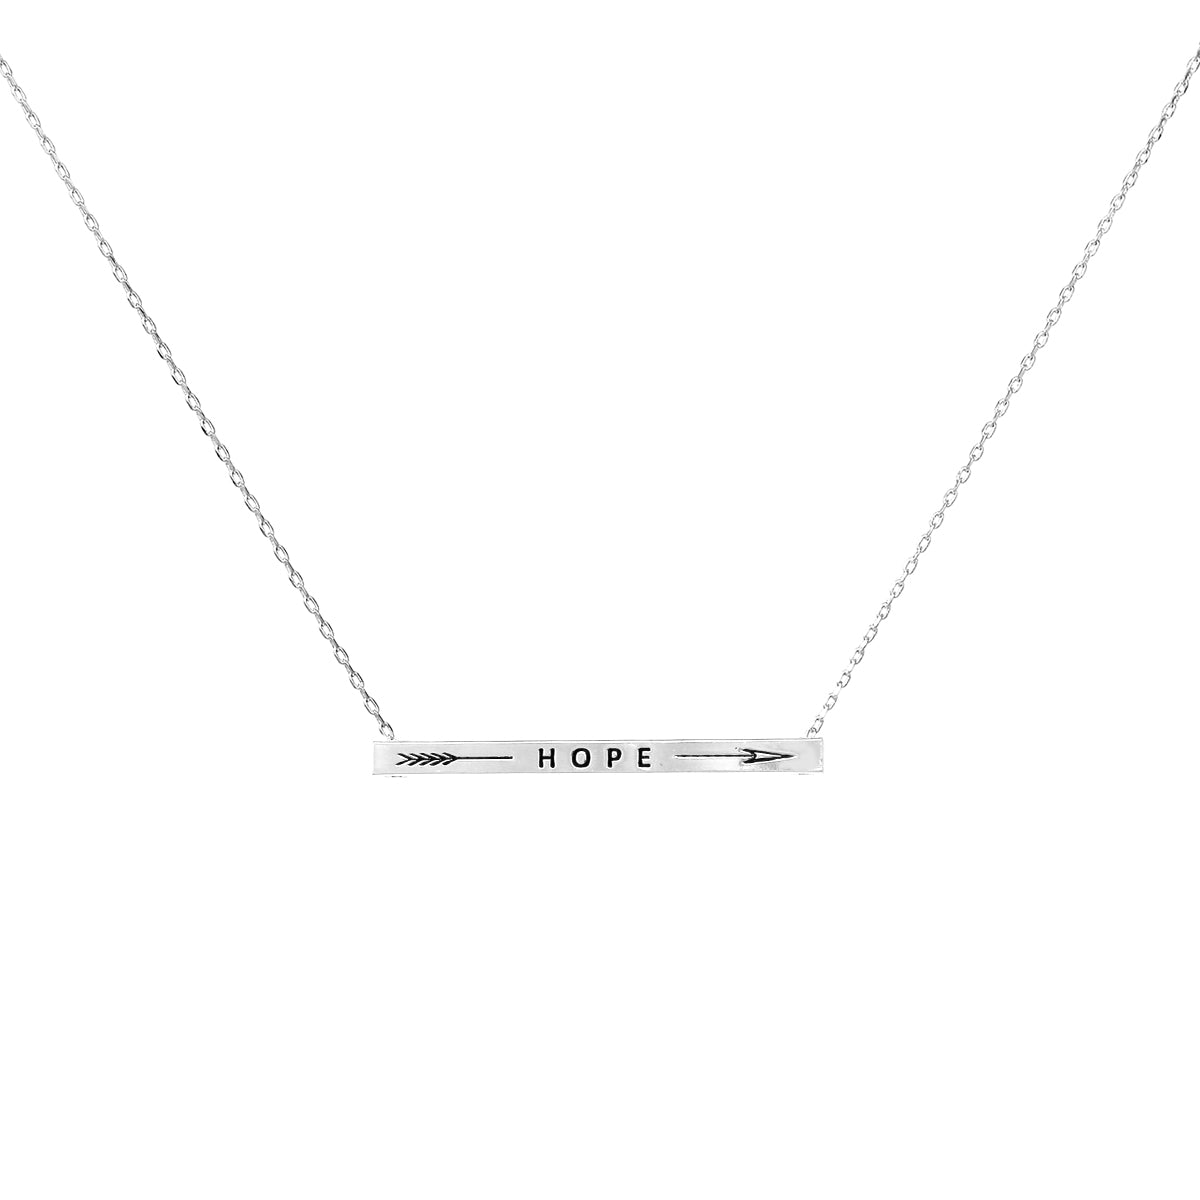 HOPE With Arrow Inspirational Message Pendant Short Necklace